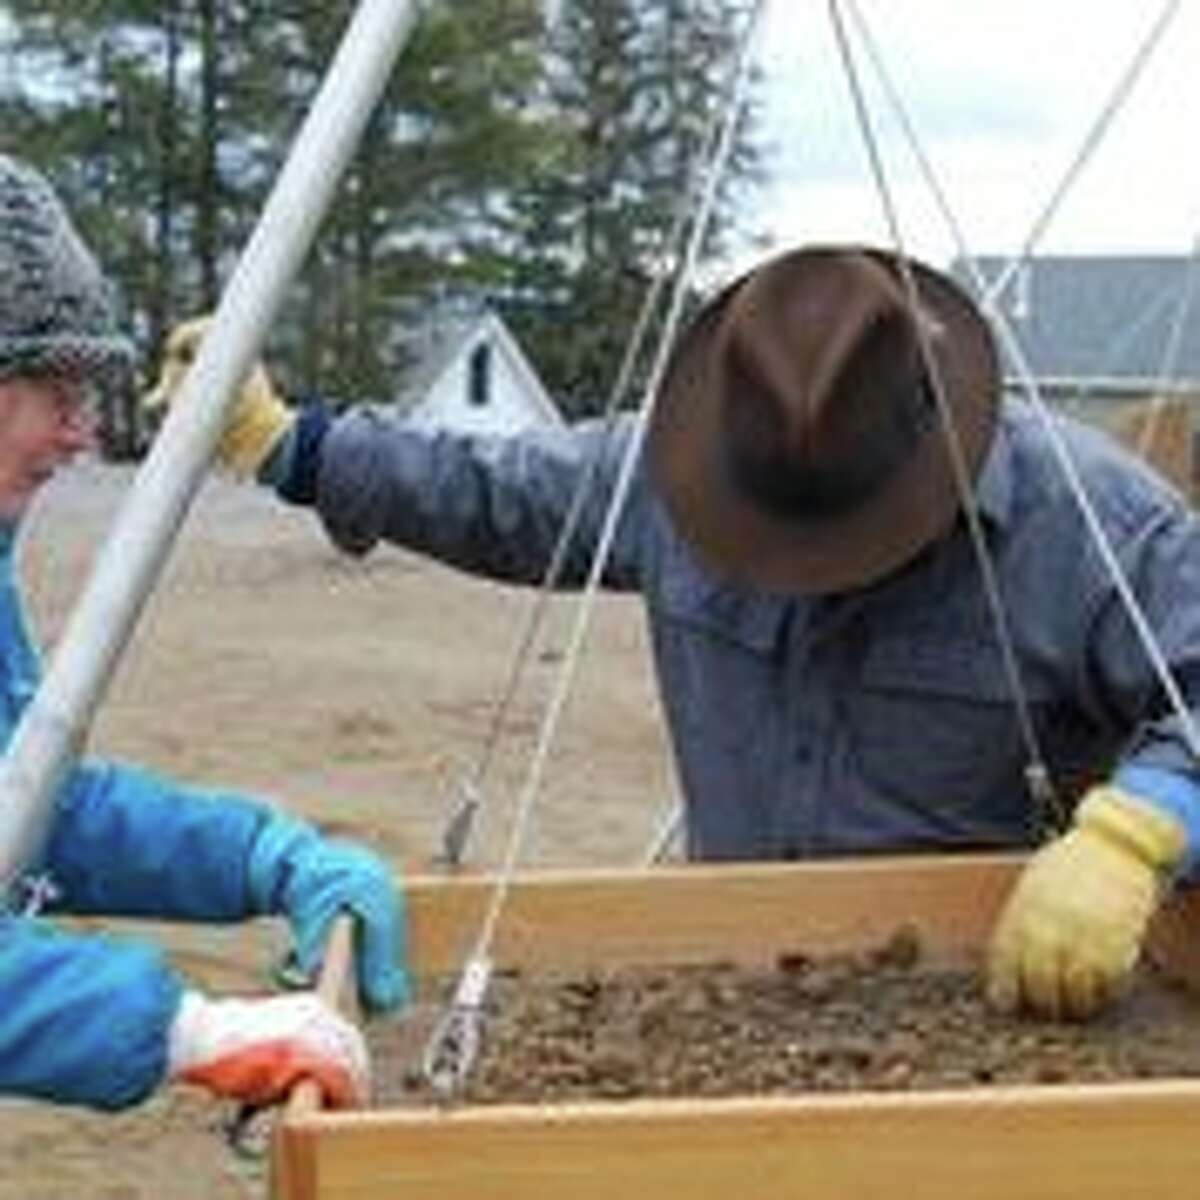 Lyn Karig Hohmann and Charles Vandrei sift for artifacts and 18th-century human remains, discovered during a construction project on Courtland Street in the village of Lake George. (Photo courtesy of Lisa Anderson)